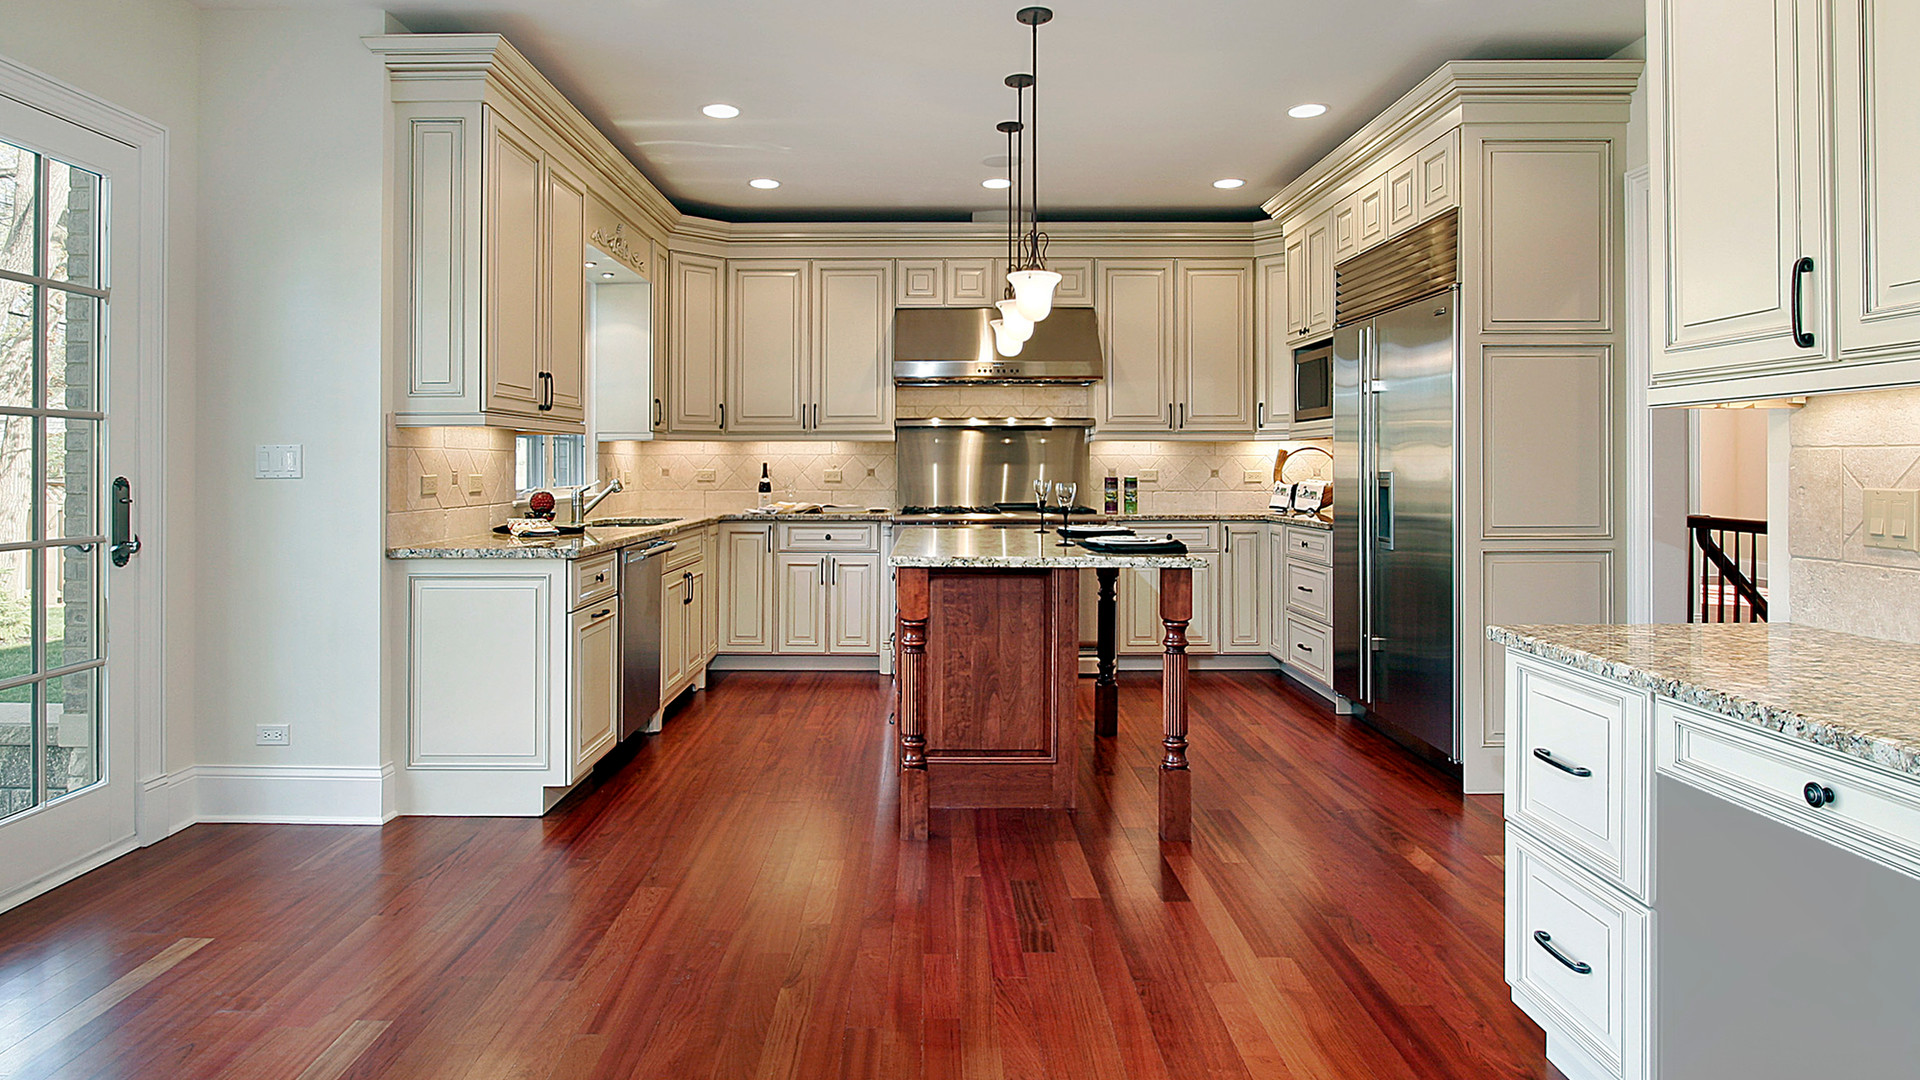 kitchen-with-cherry-wood-floor-12656978.